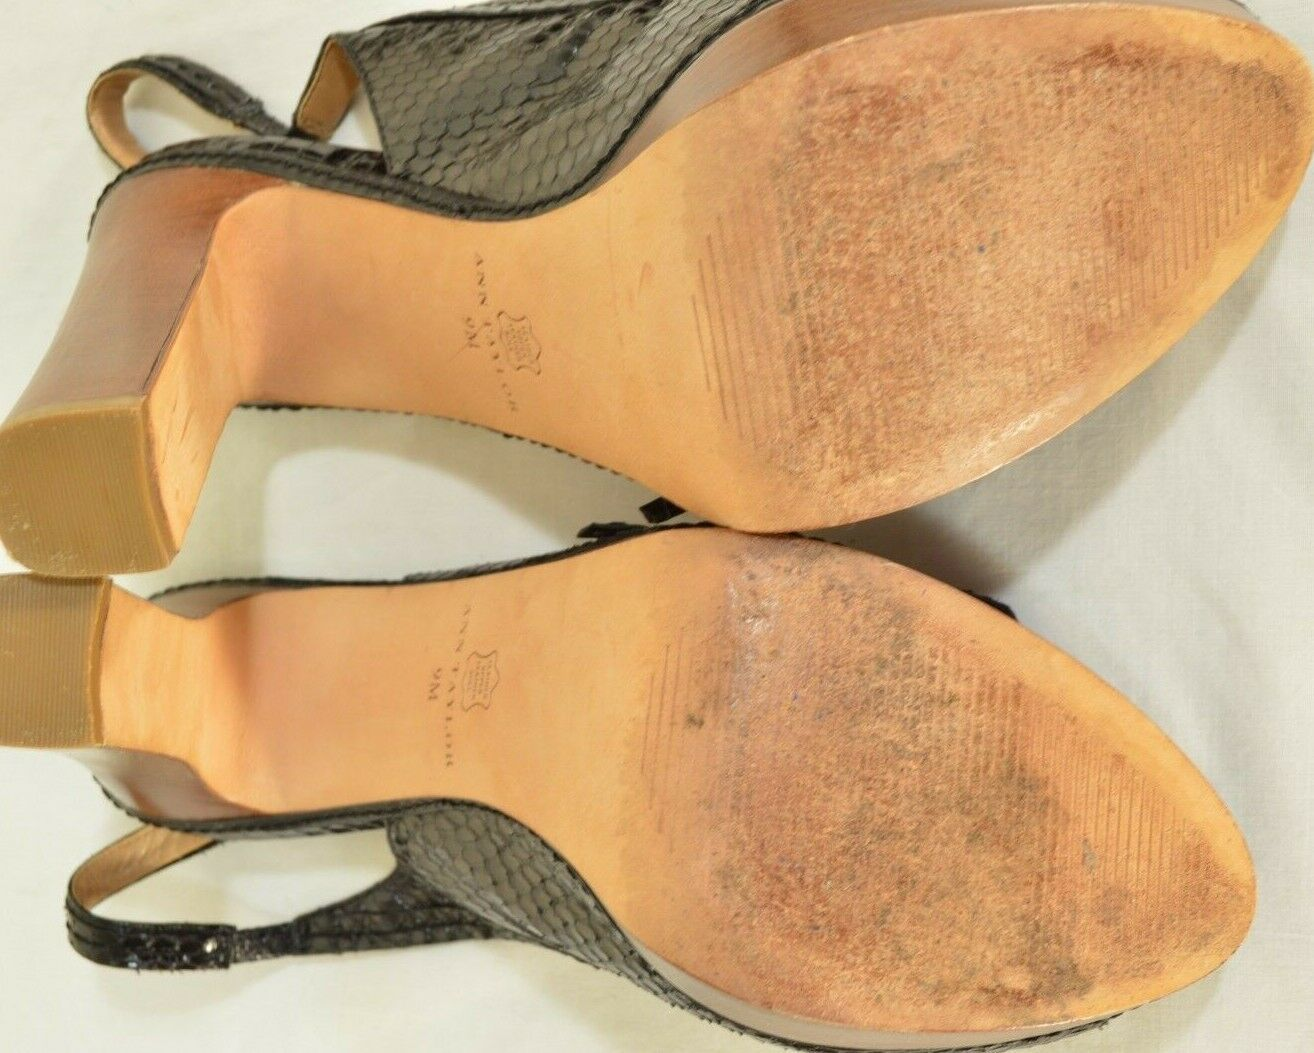 Ann Taylor shoes heels 9M platform black leather snakeskin high chic career image 9